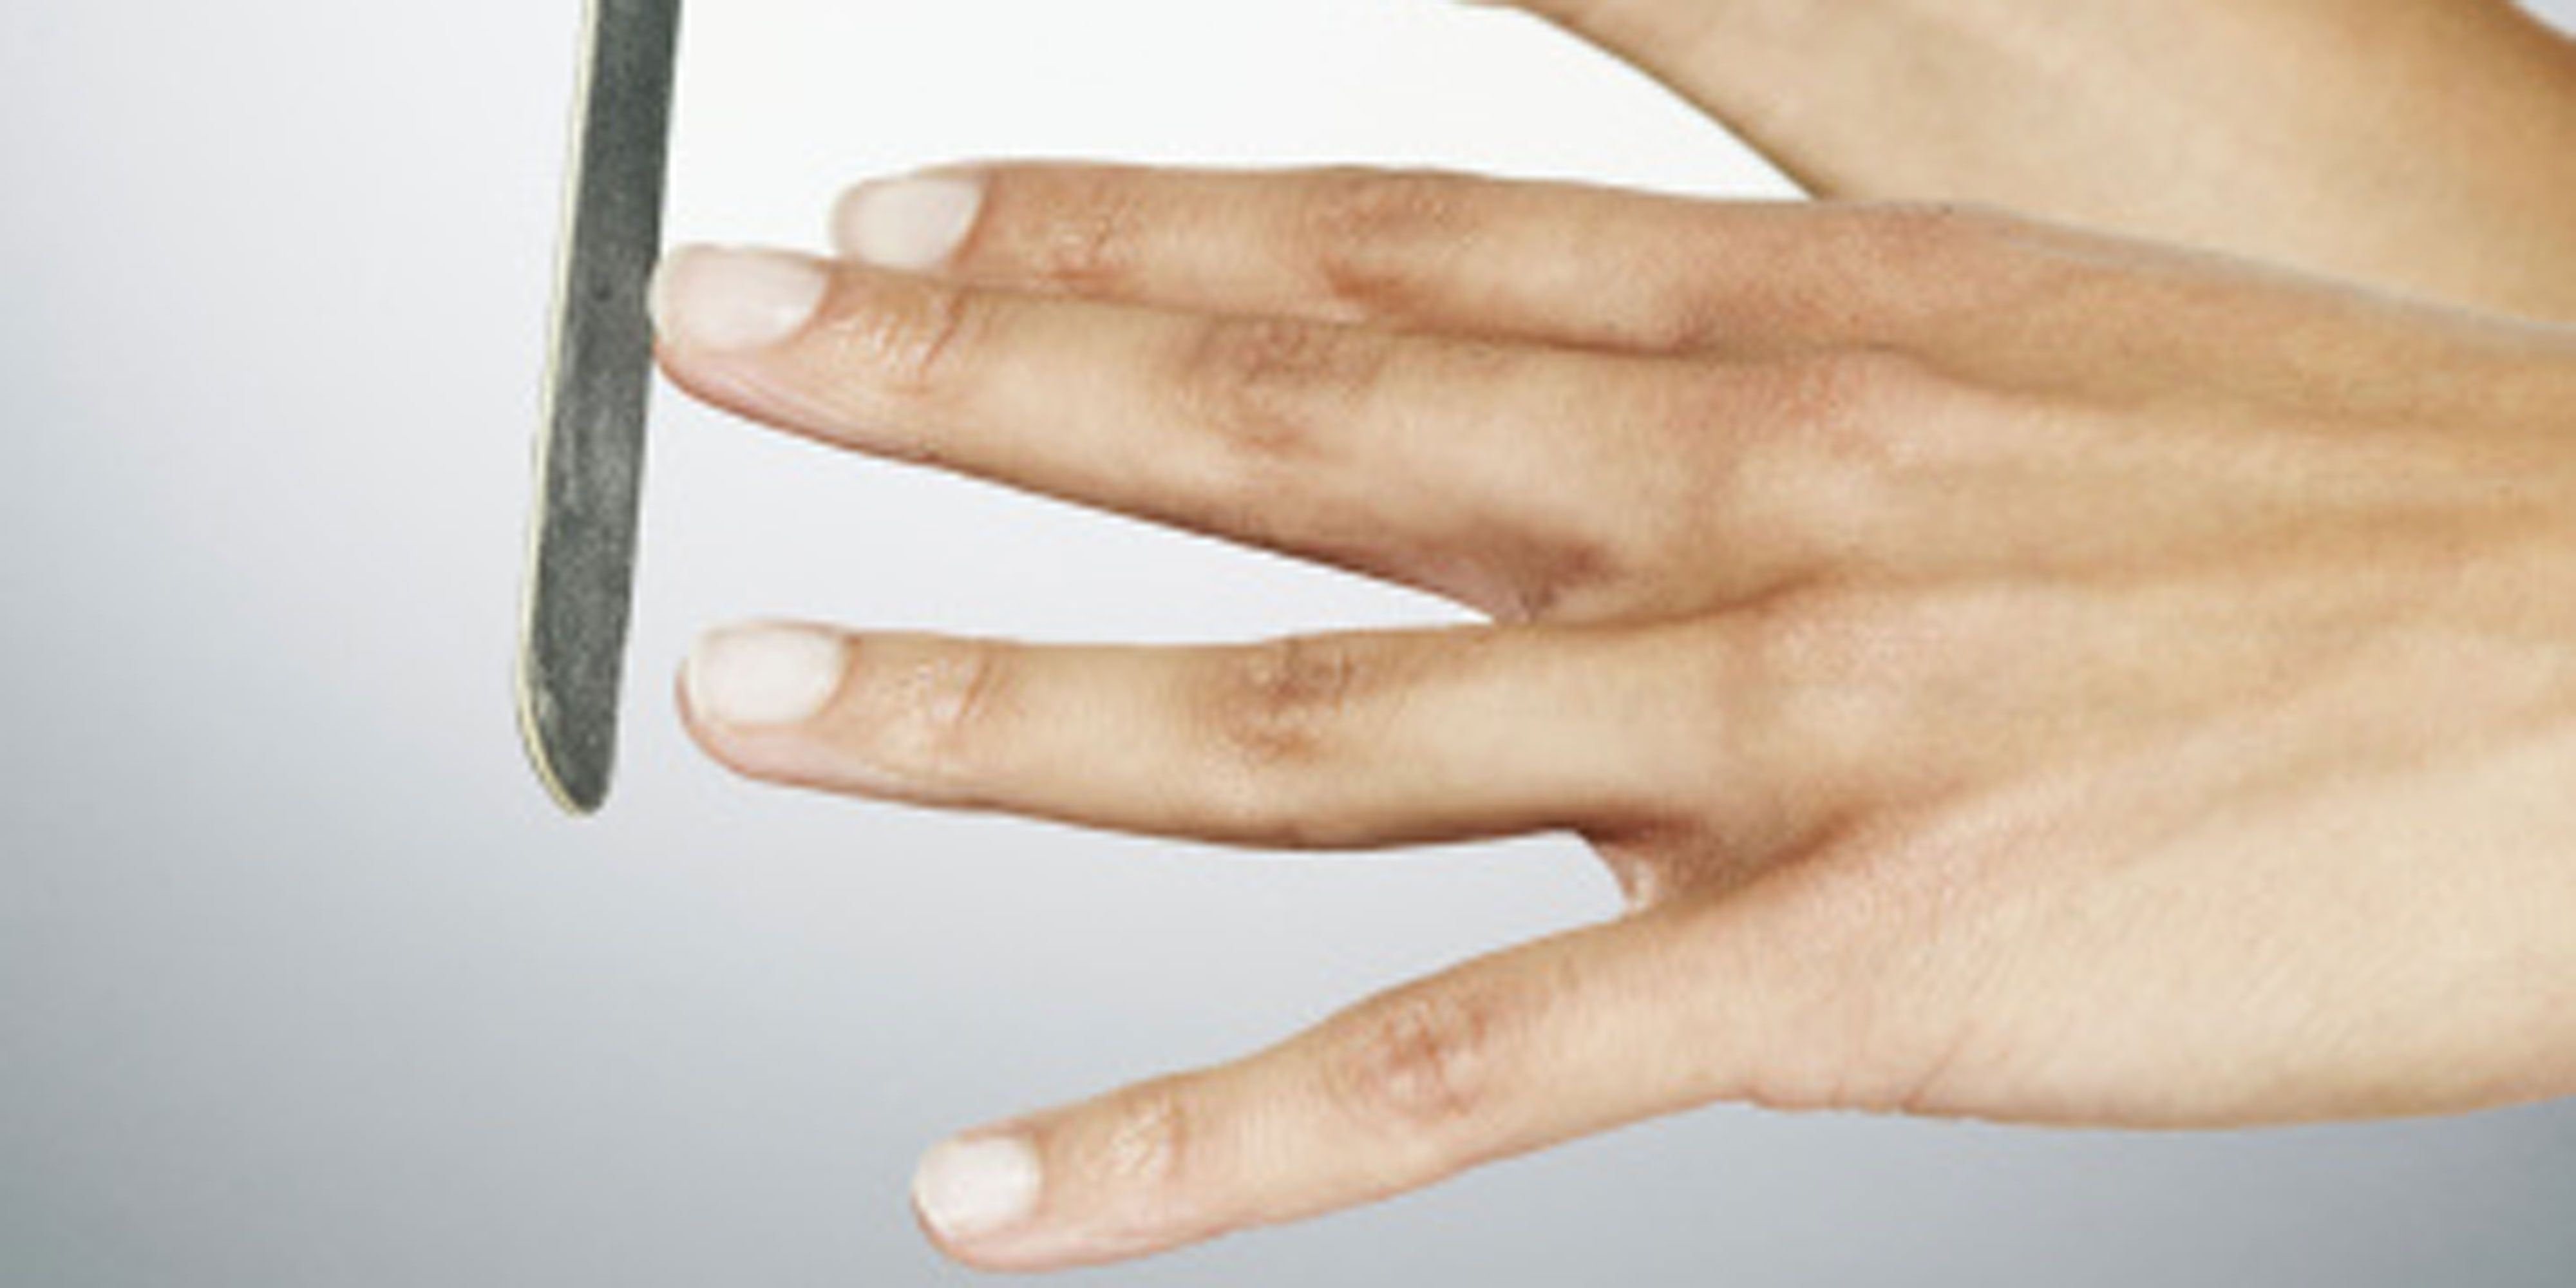 Two-minute health test: nails